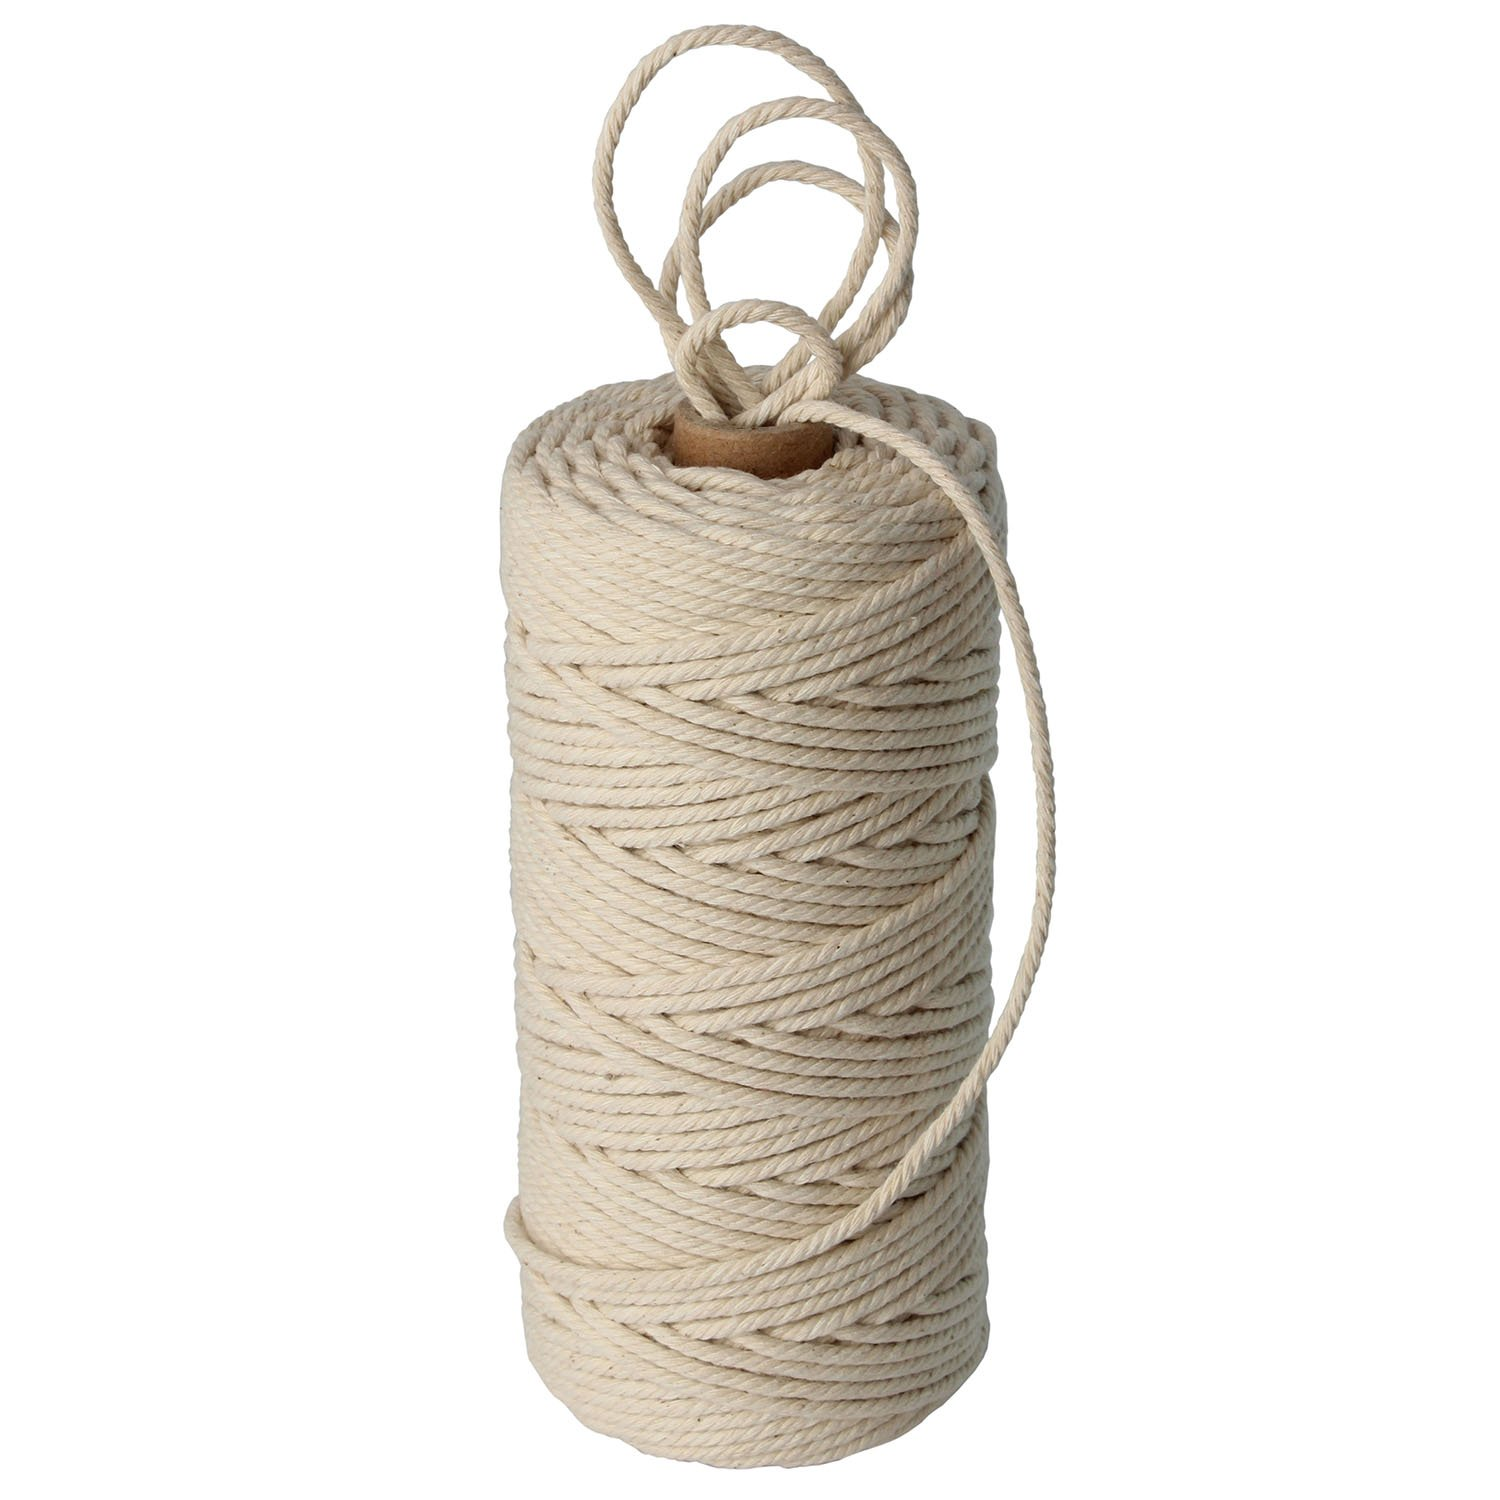 328 feet 3mm Cotton Cord - Best for Plant Hanger Wall Hanging Craft Making - 3mm Twine String for Crafts by Stillness Crafts